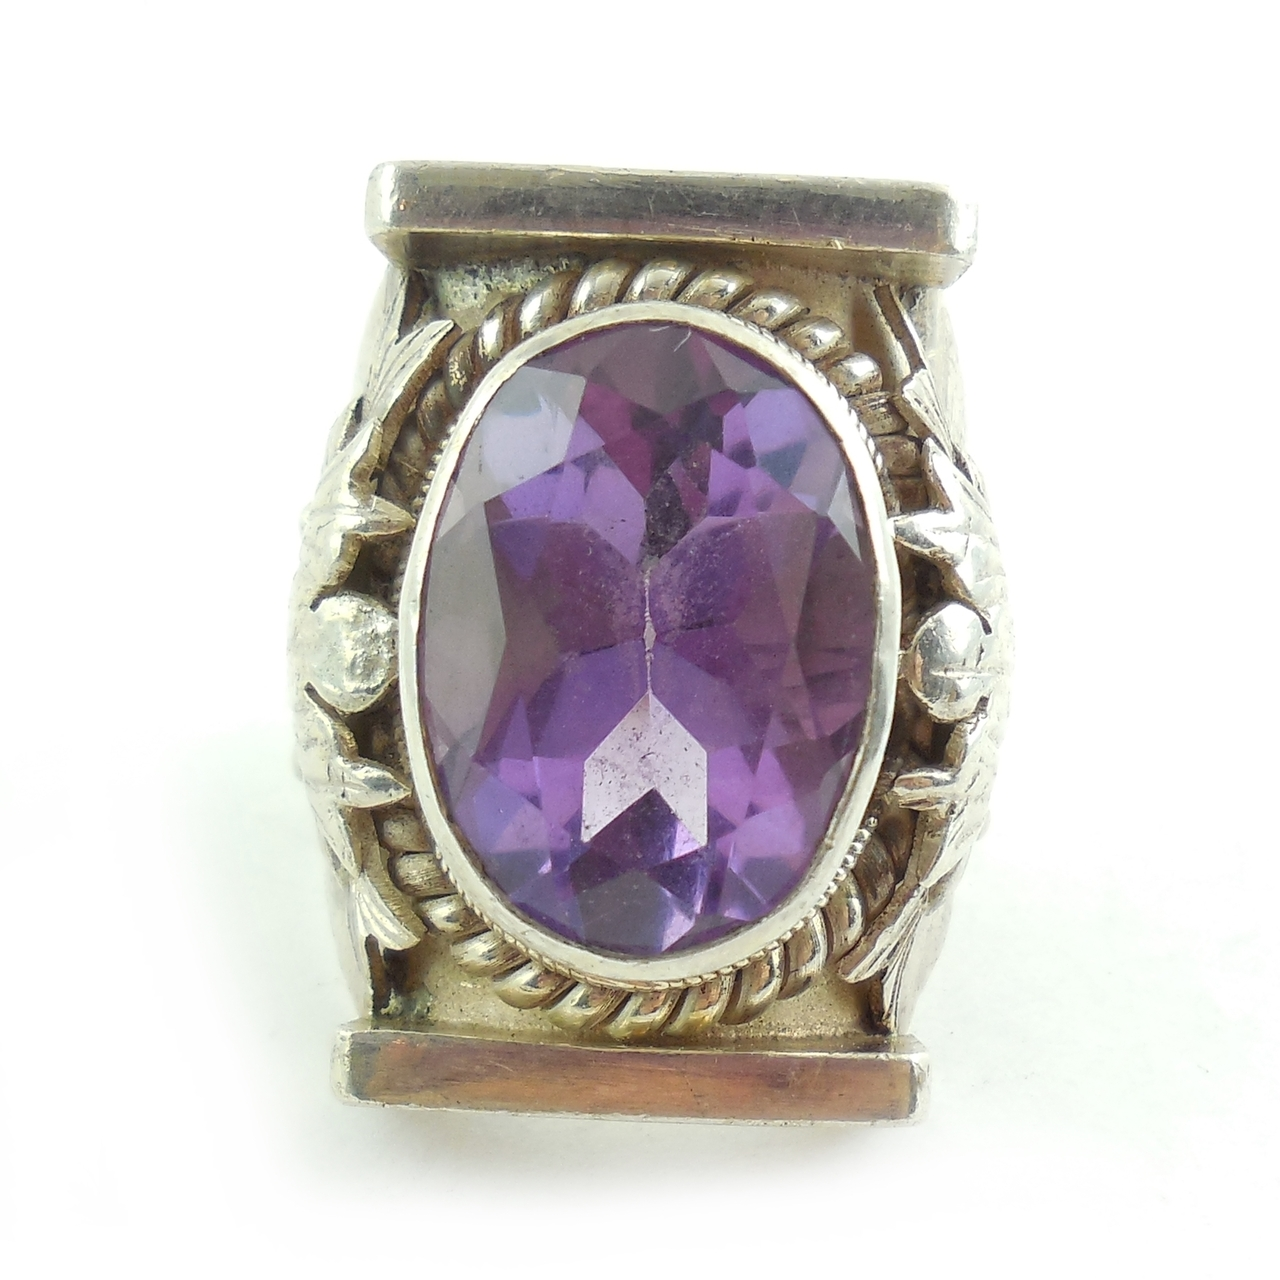 Big Heavy Vintage Hand Made Sterling Silver 17m Amethyst Ring Size 9